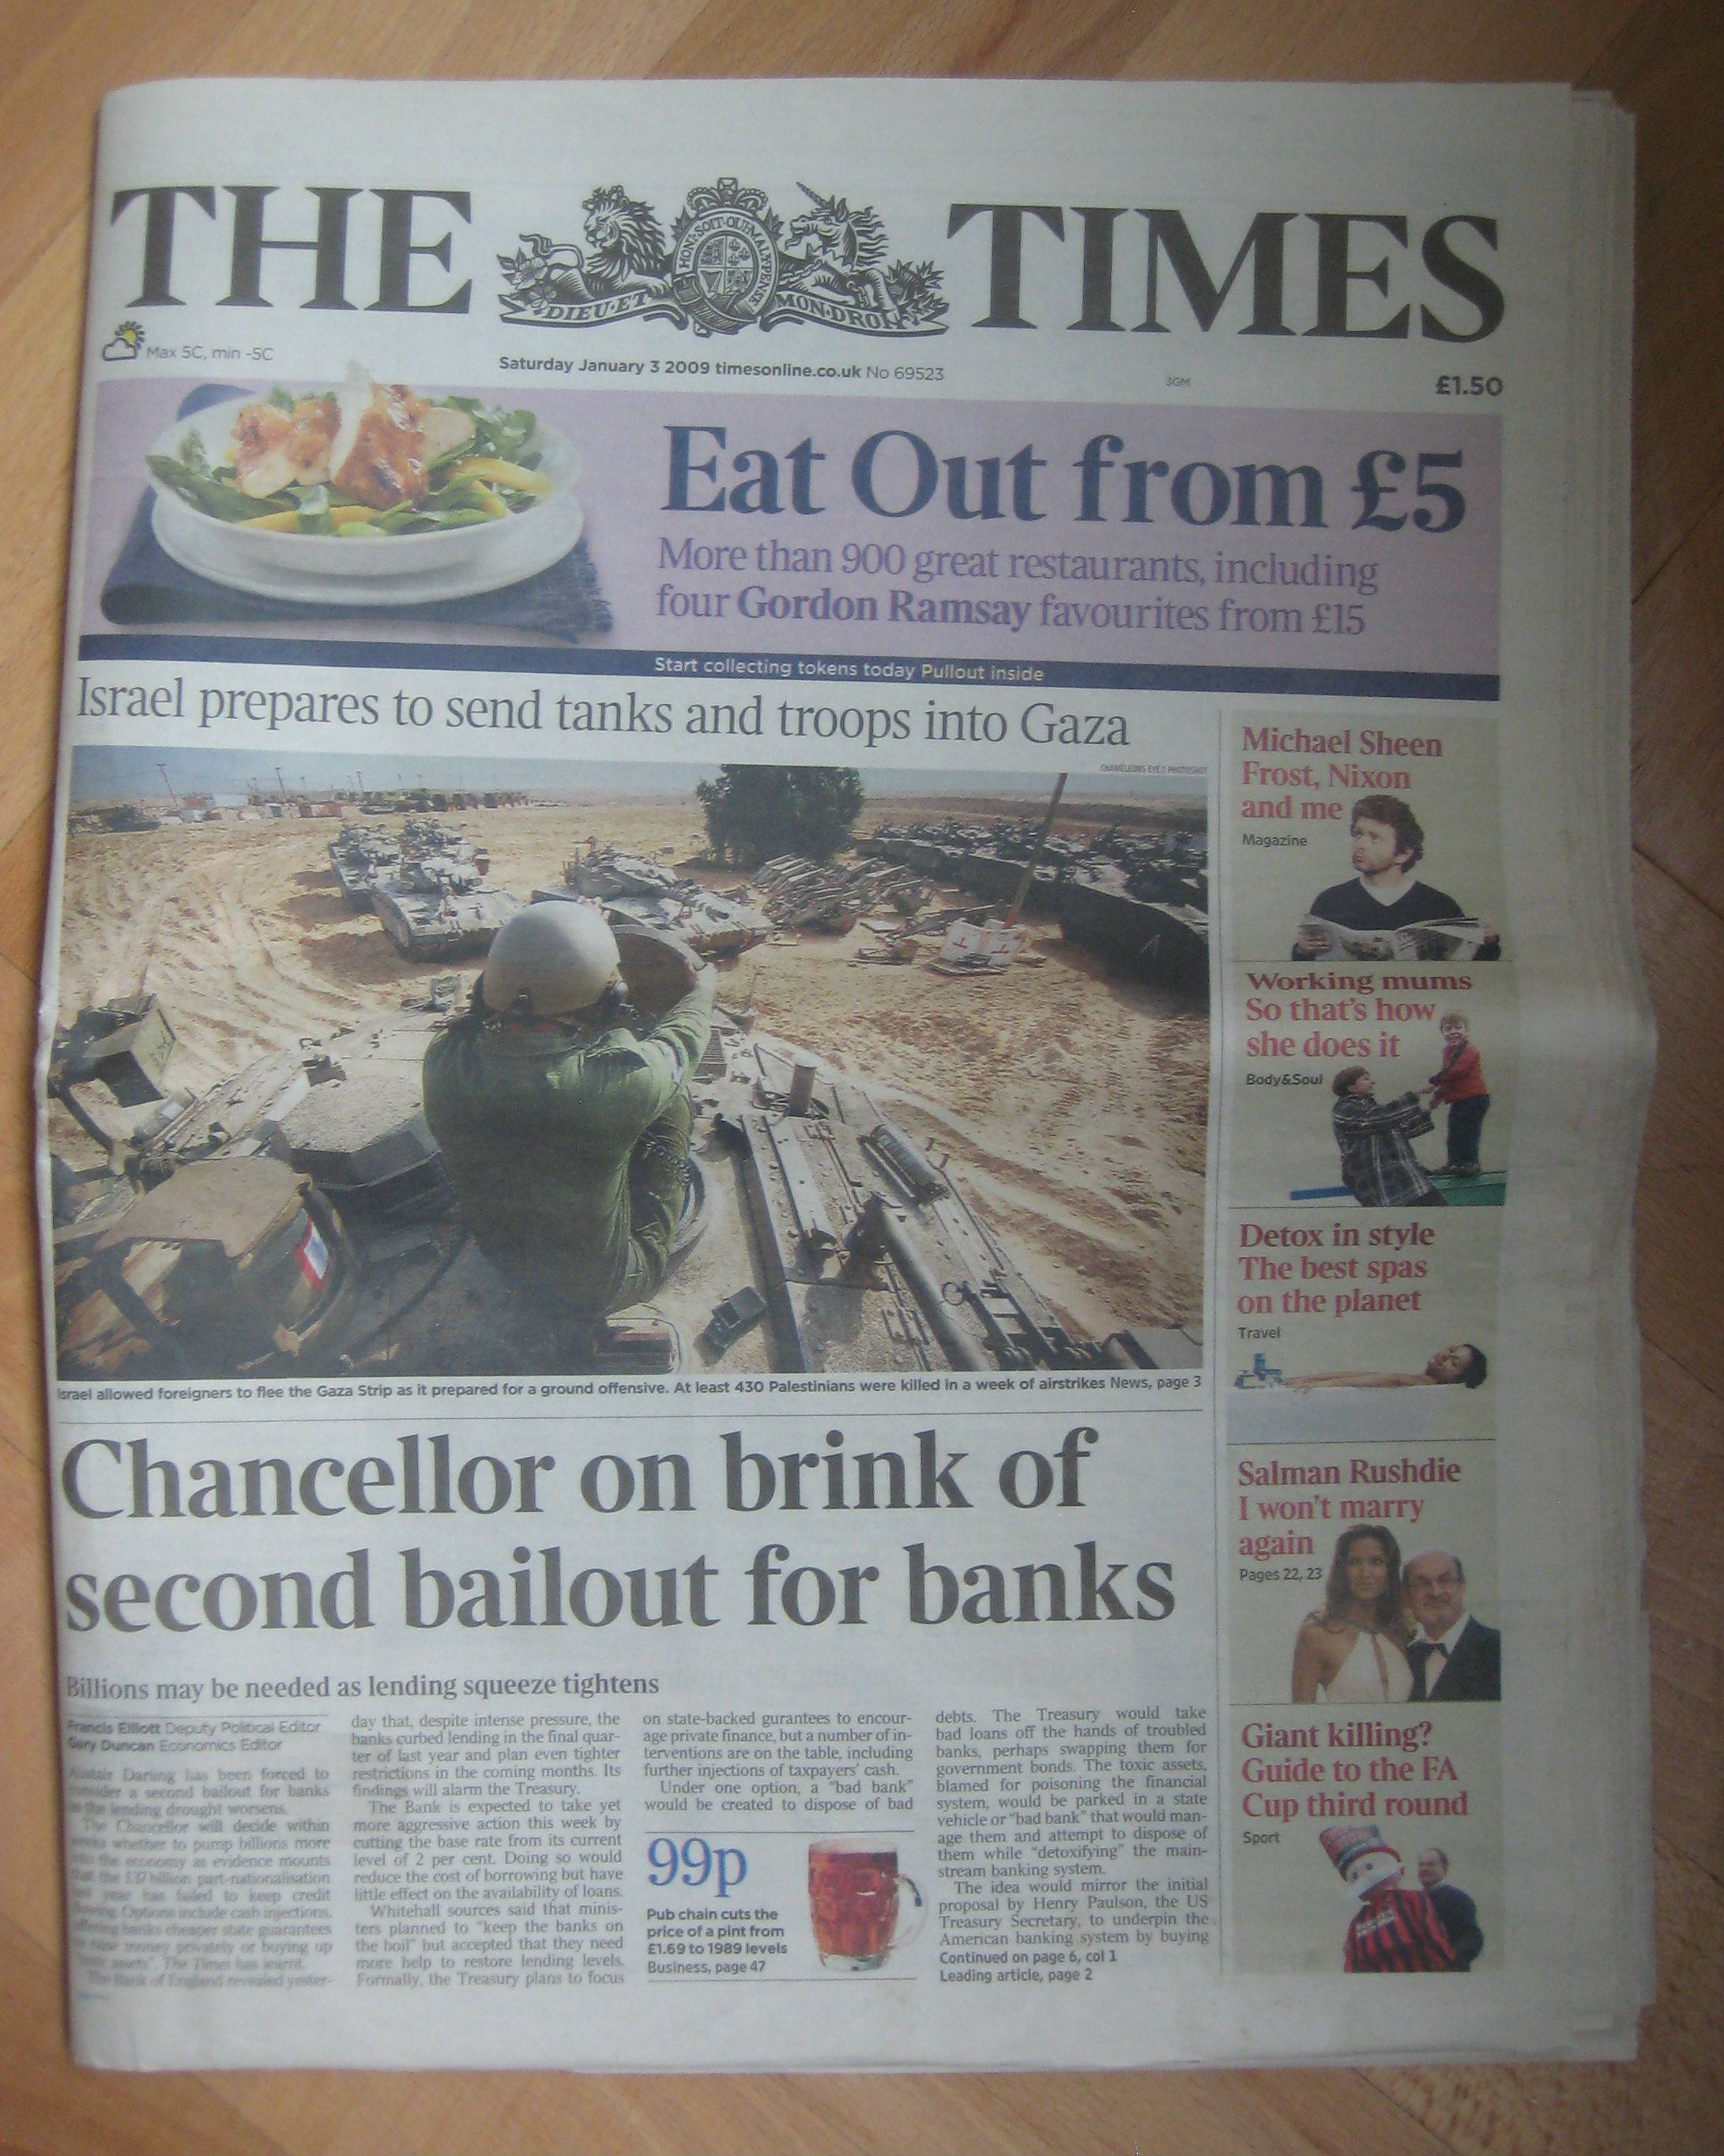 Times of London headline referenced by the Bitcoin genesis block